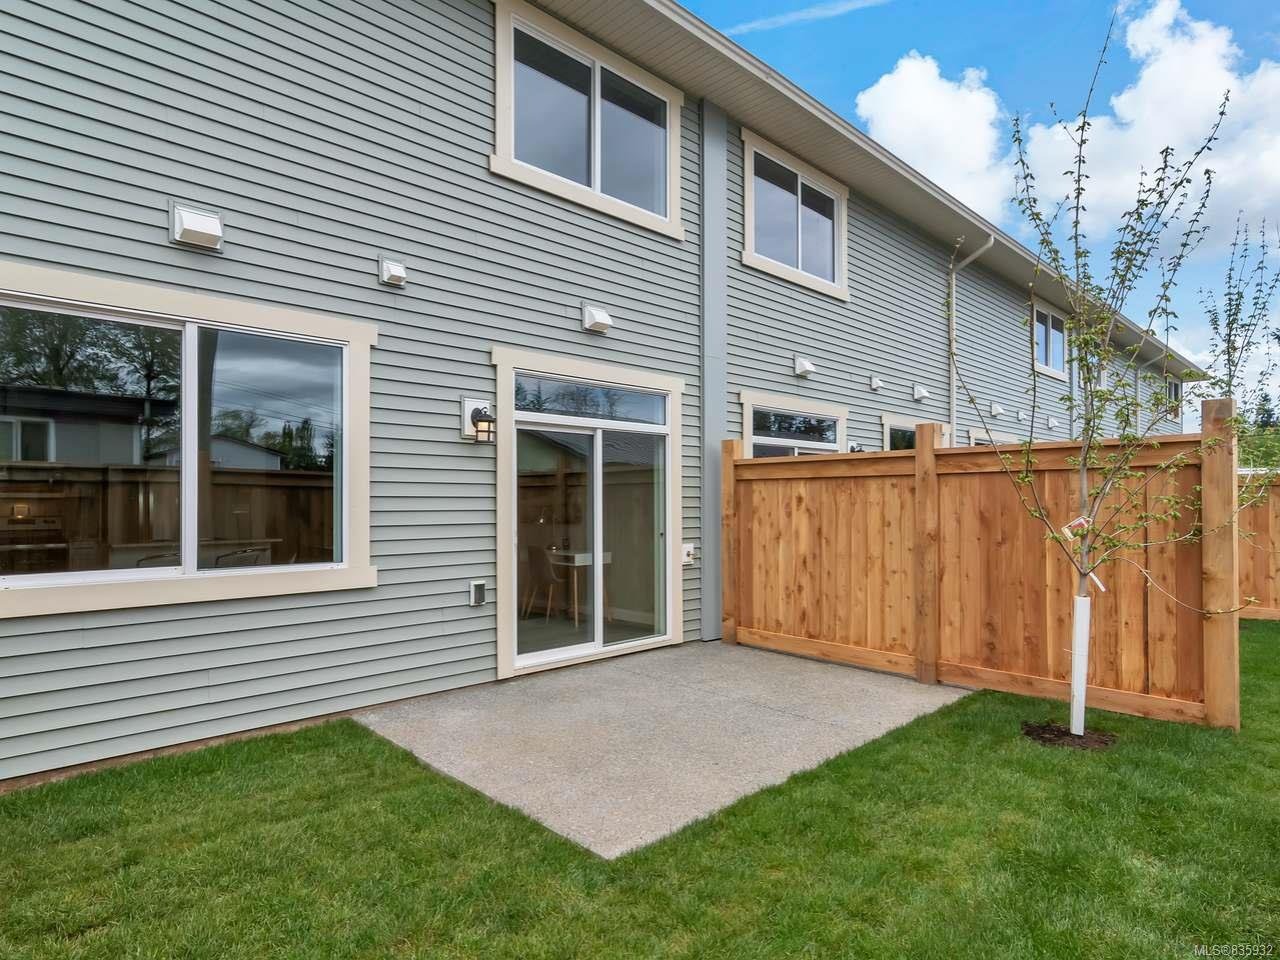 Photo 20: Photos: D 328 Petersen Rd in CAMPBELL RIVER: CR Campbell River West Row/Townhouse for sale (Campbell River)  : MLS®# 835932